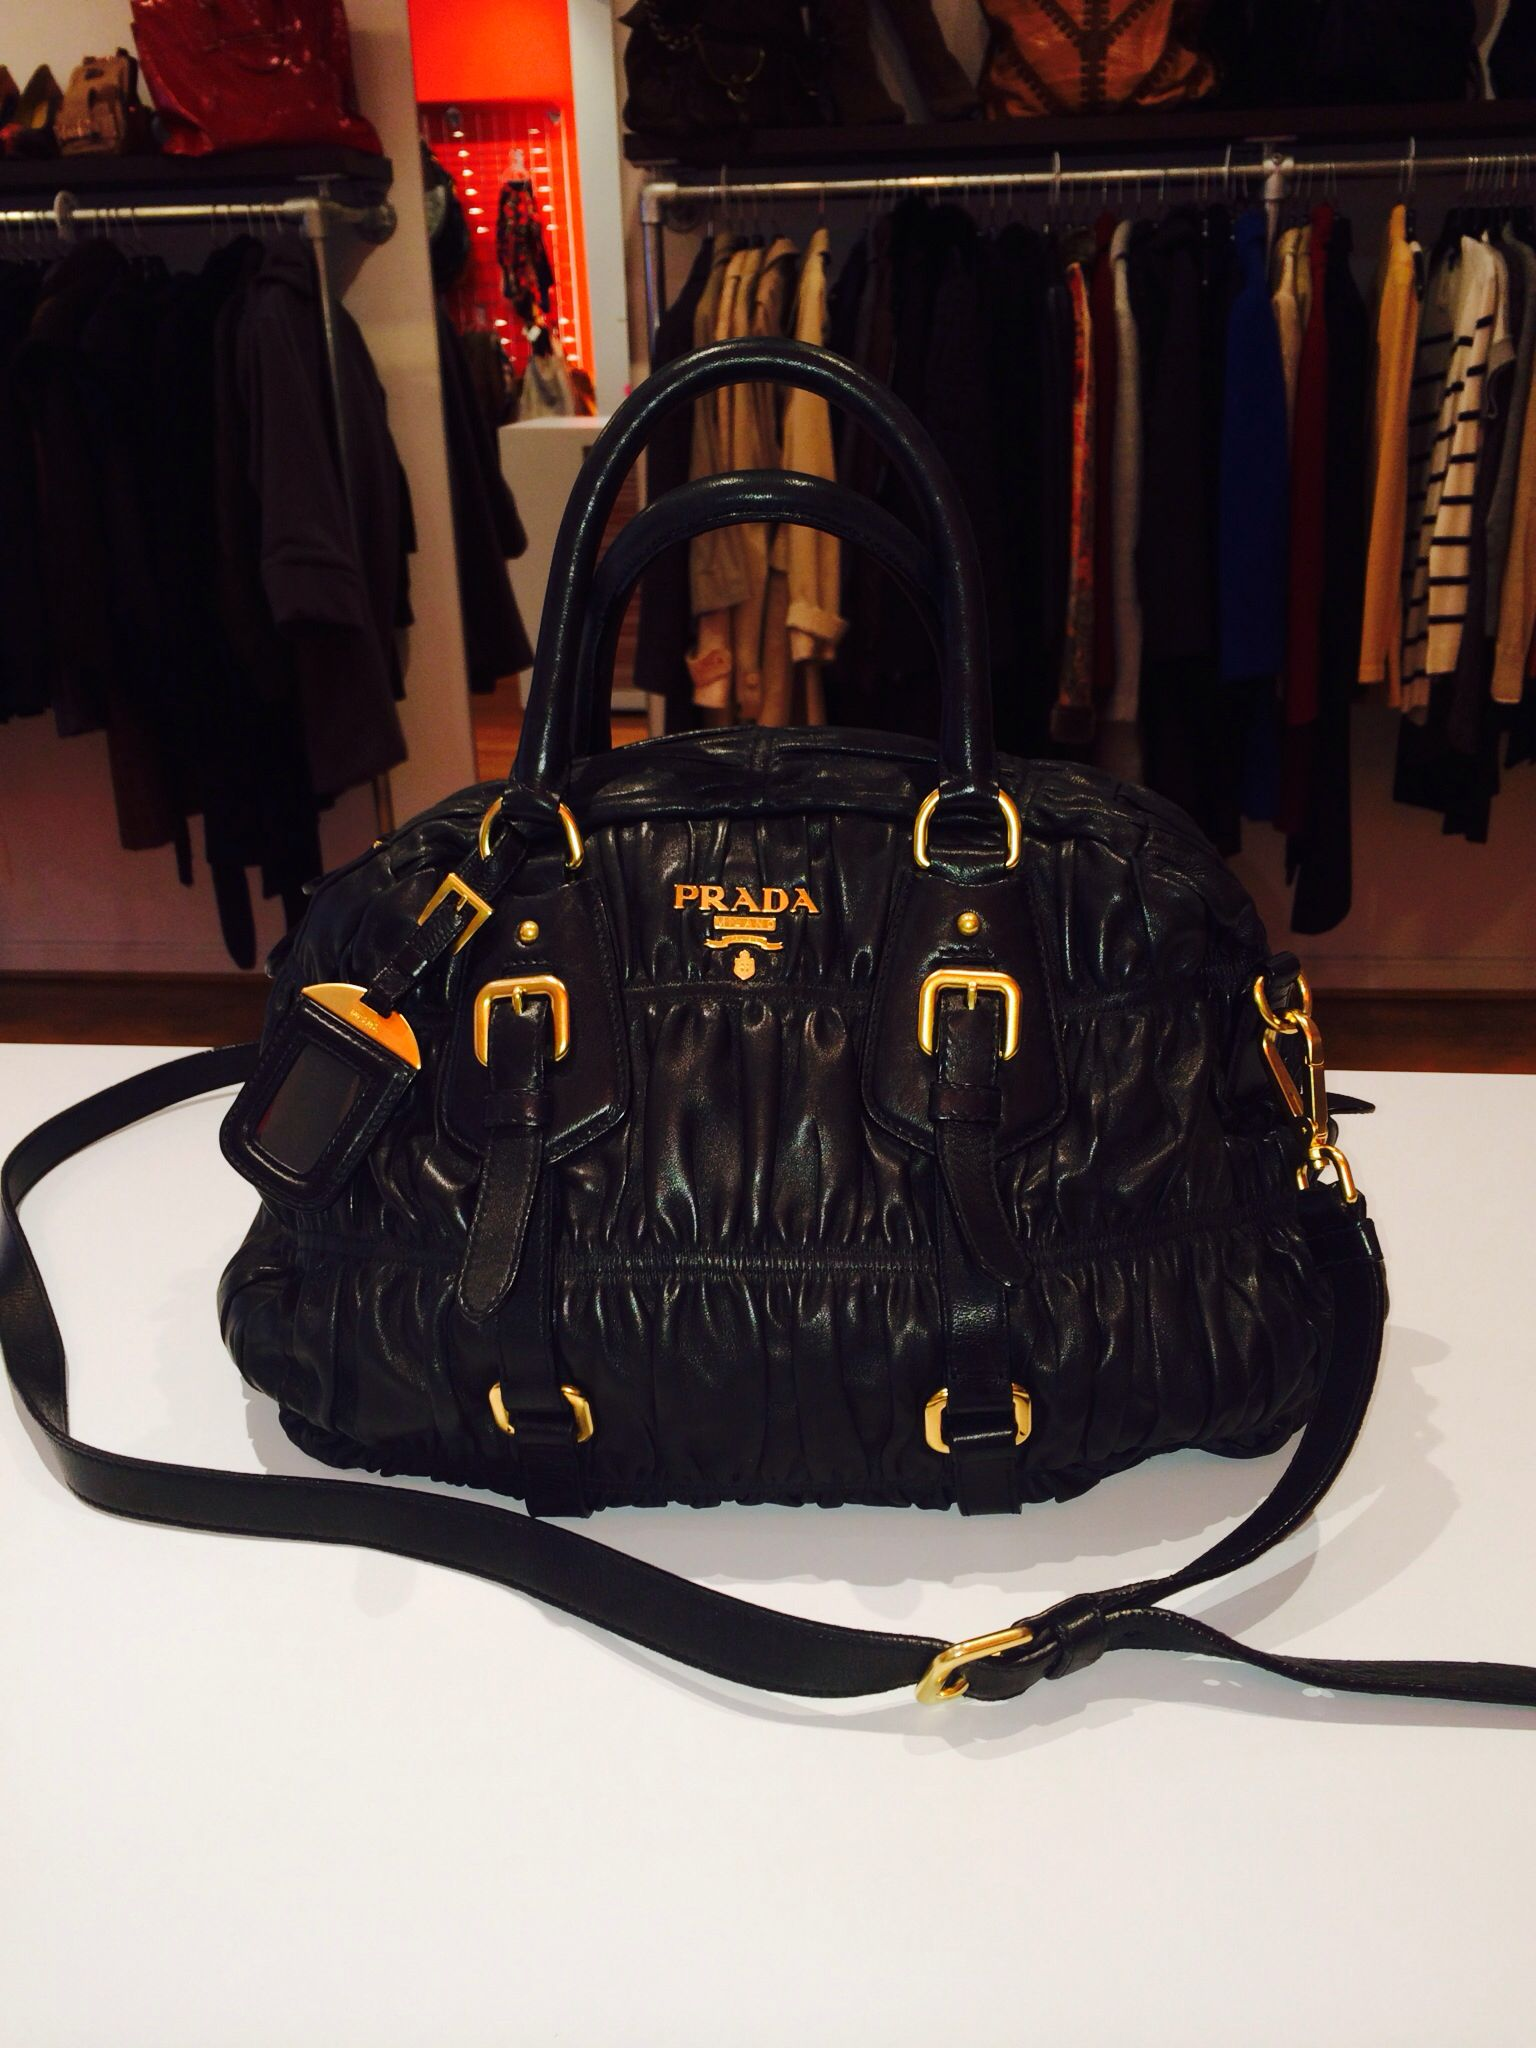 cb9a027c2c6a Prada napa gaufre leather bowler large convertible bag available now at  Reddz Trading Georgetown